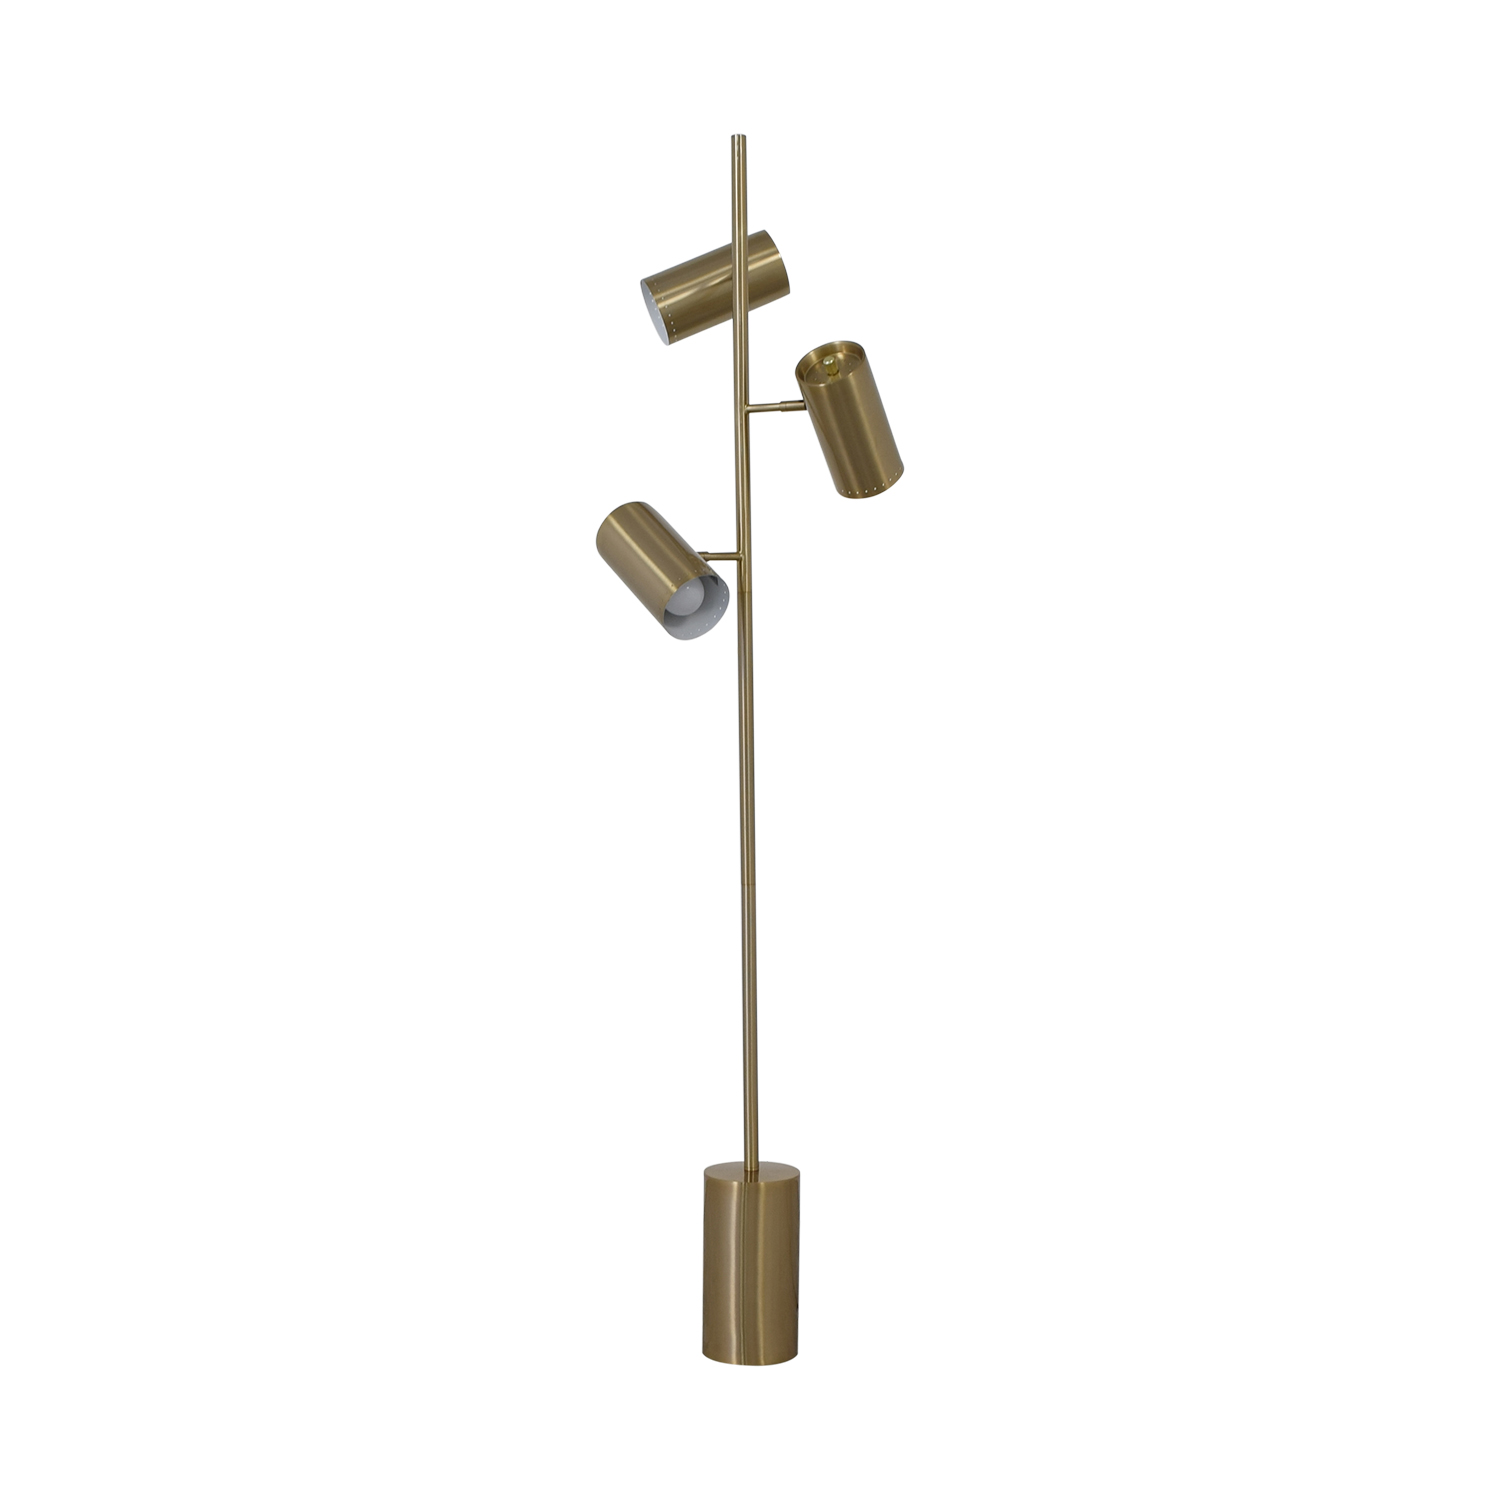 CB2 CB2 Trio Brushed Nickel Floor Lamp nyc